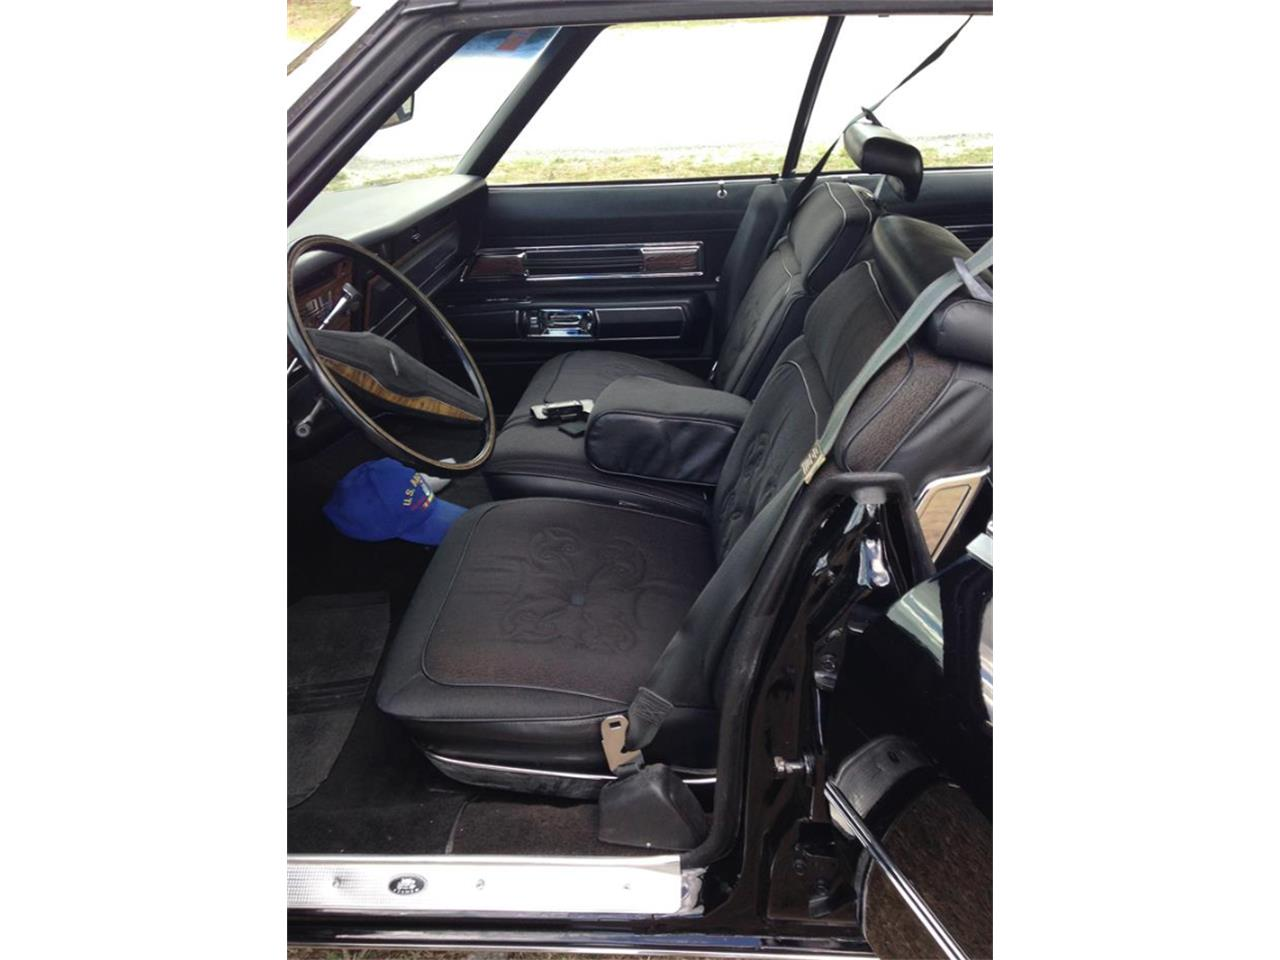 Large Picture of '74 Oldsmobile 98 Regency - $19,800.00 Offered by a Private Seller - NOQB